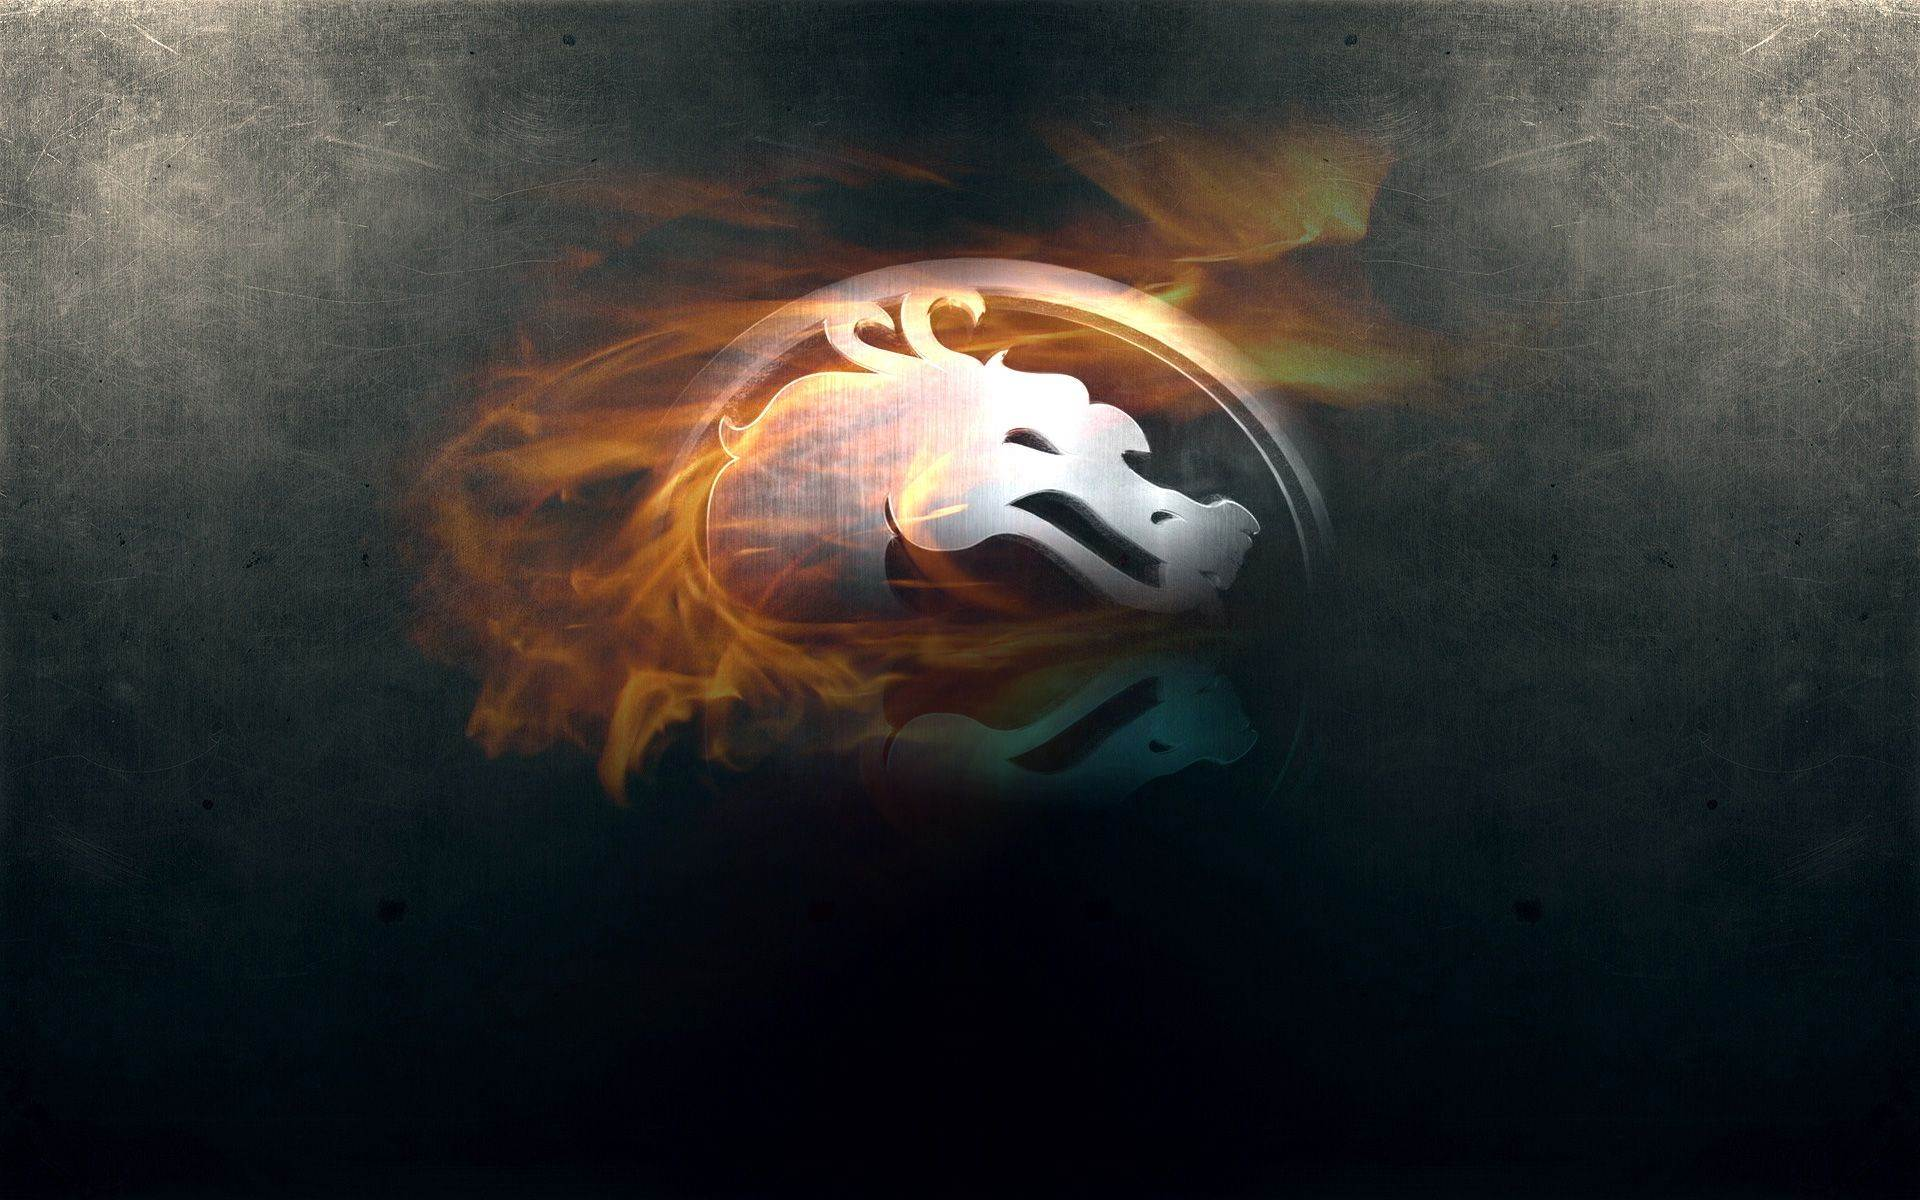 Mortal Kombat Wallpapers HD Backgrounds  WallpapersInk.net 1920x1200